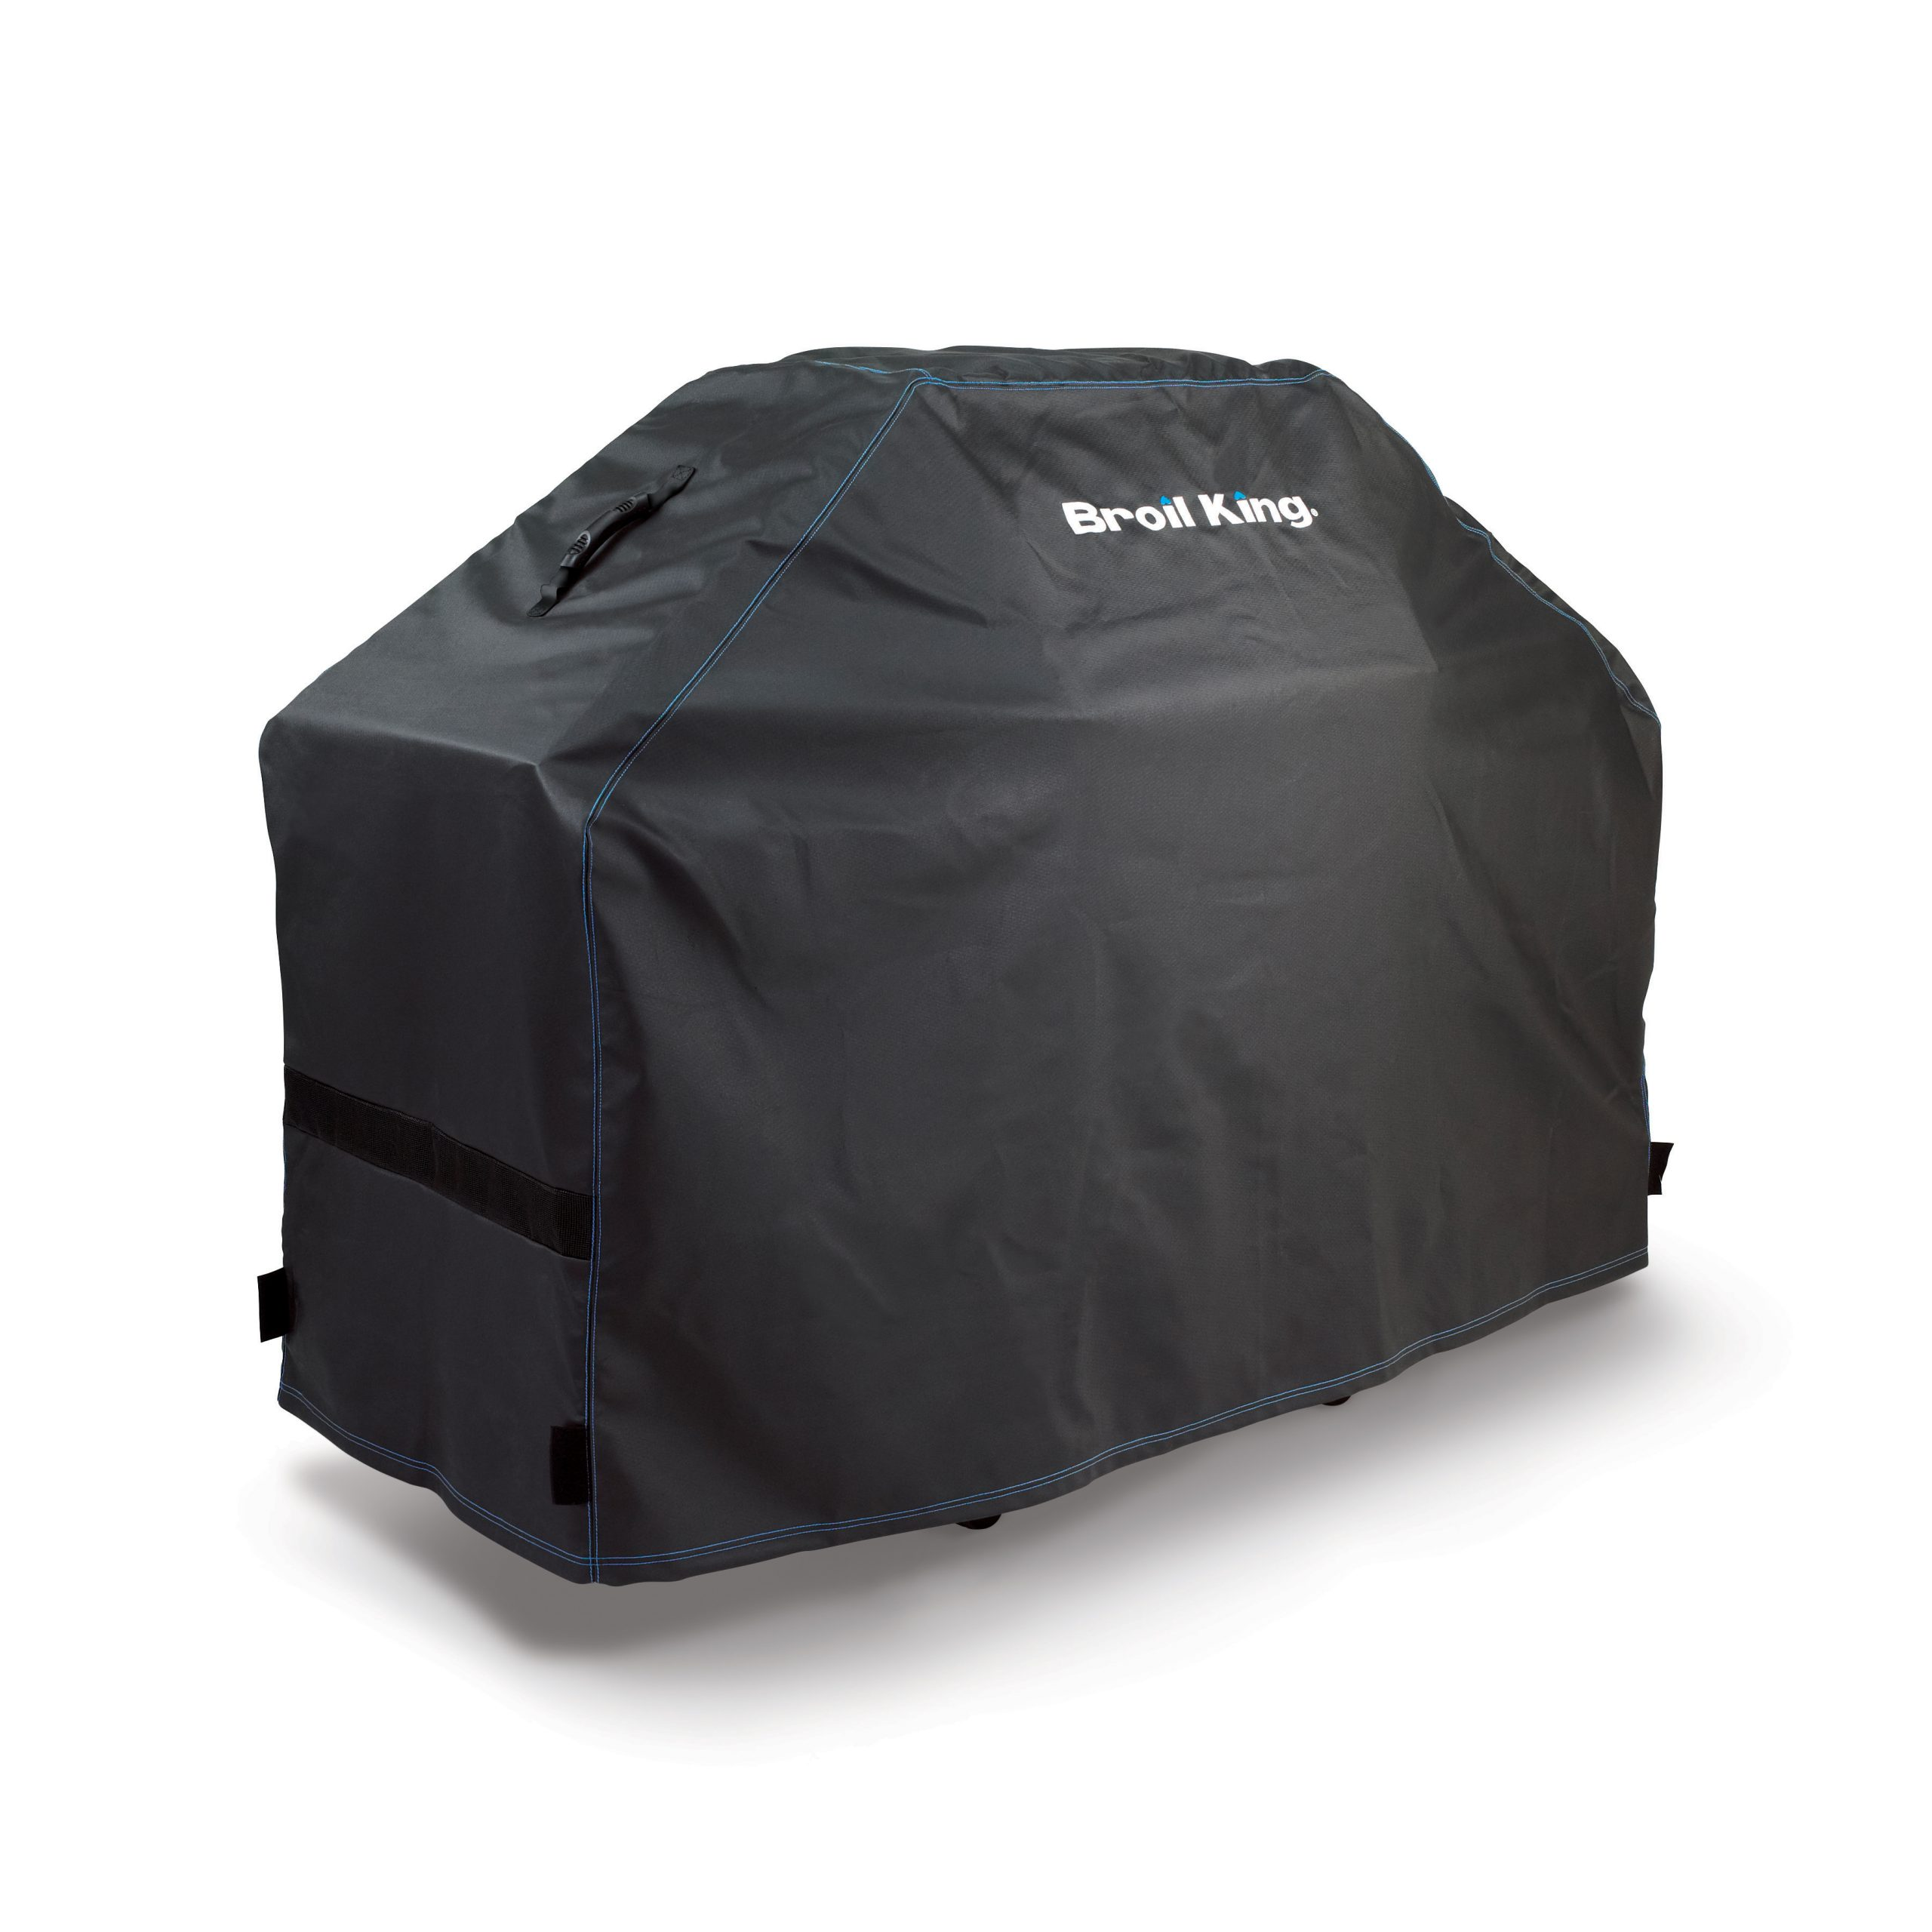 Broil King Premium Grill Cover 68488 for the Baron 500 series